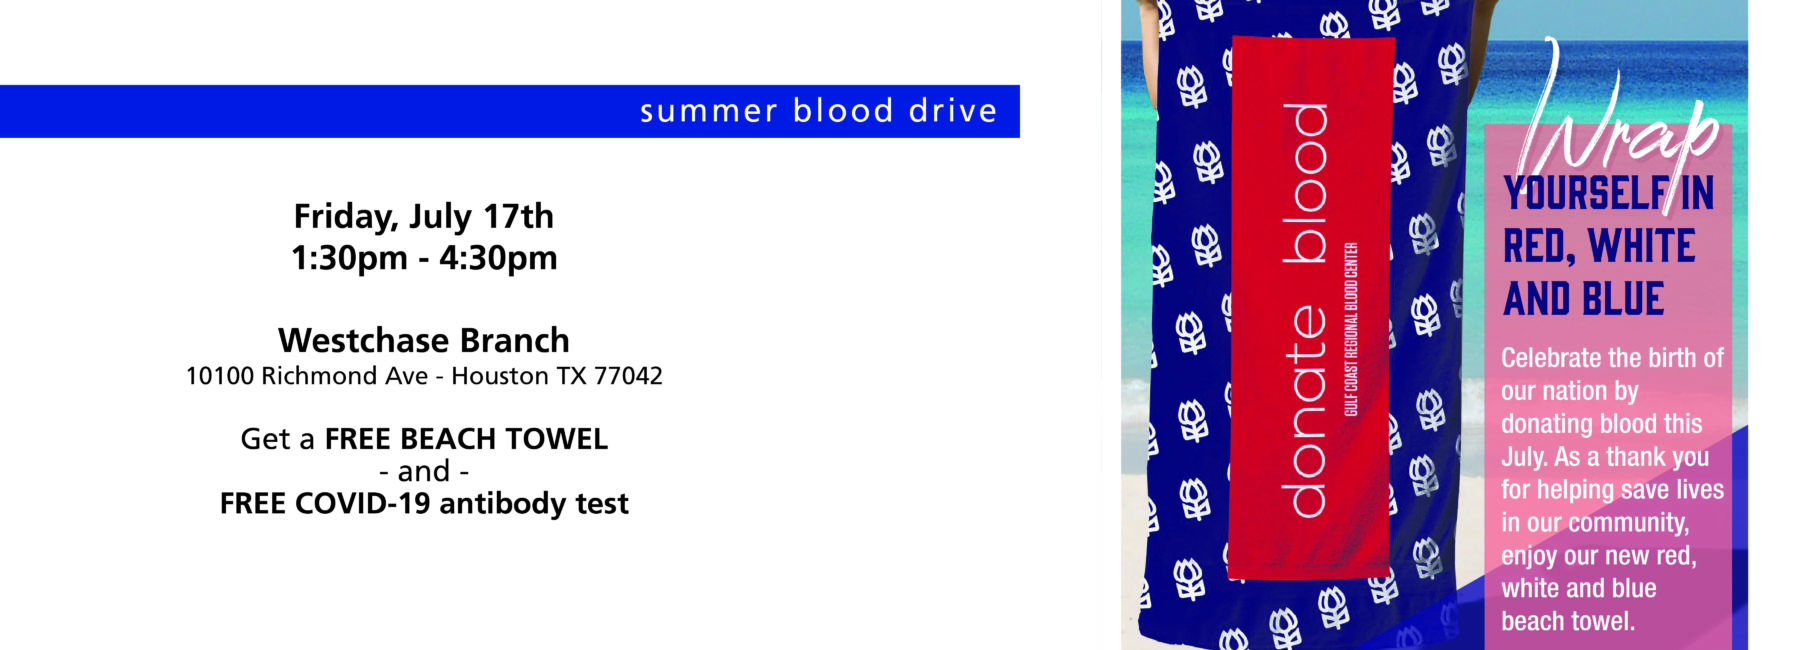 beach towel with donate blood text on it